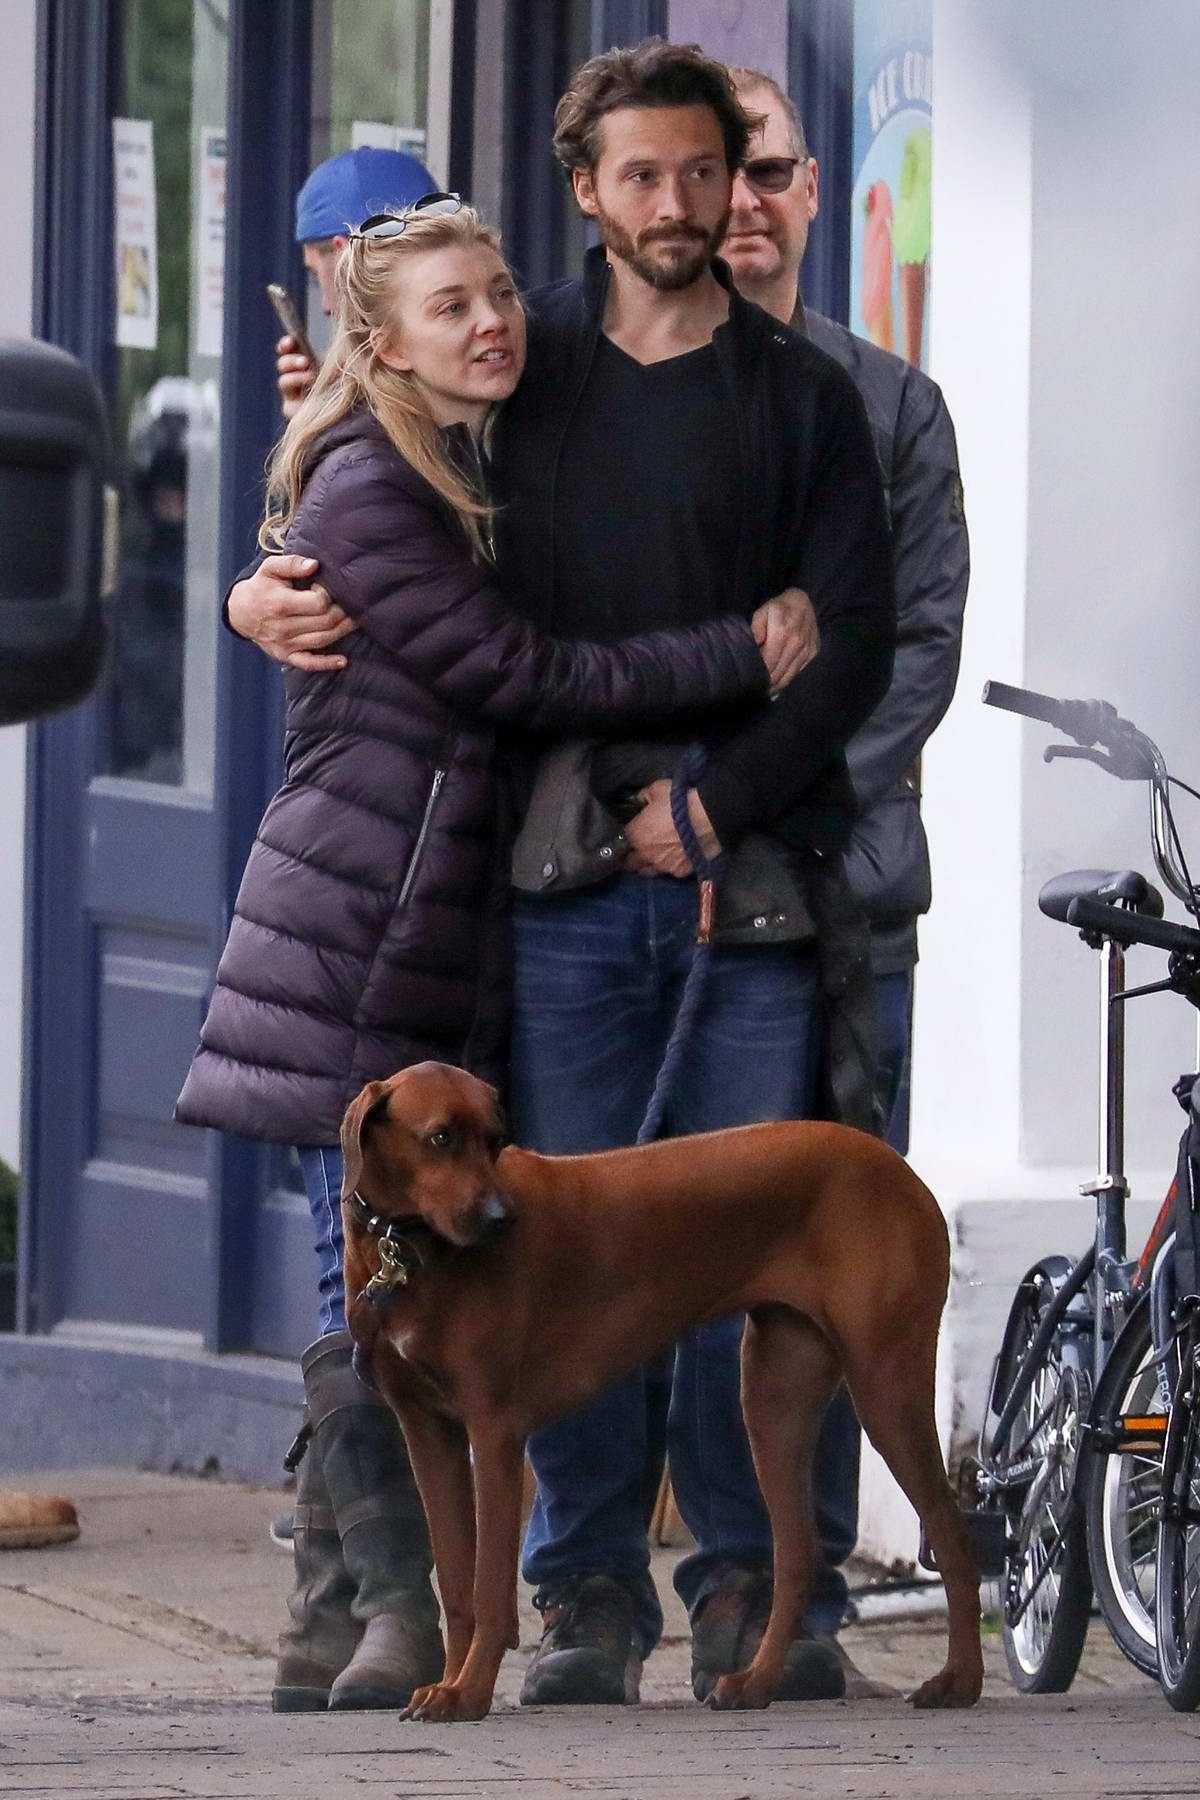 Natalie Dormer packs on some PDA with David Oakes while waiting in line for lunch and coffee in London, UK